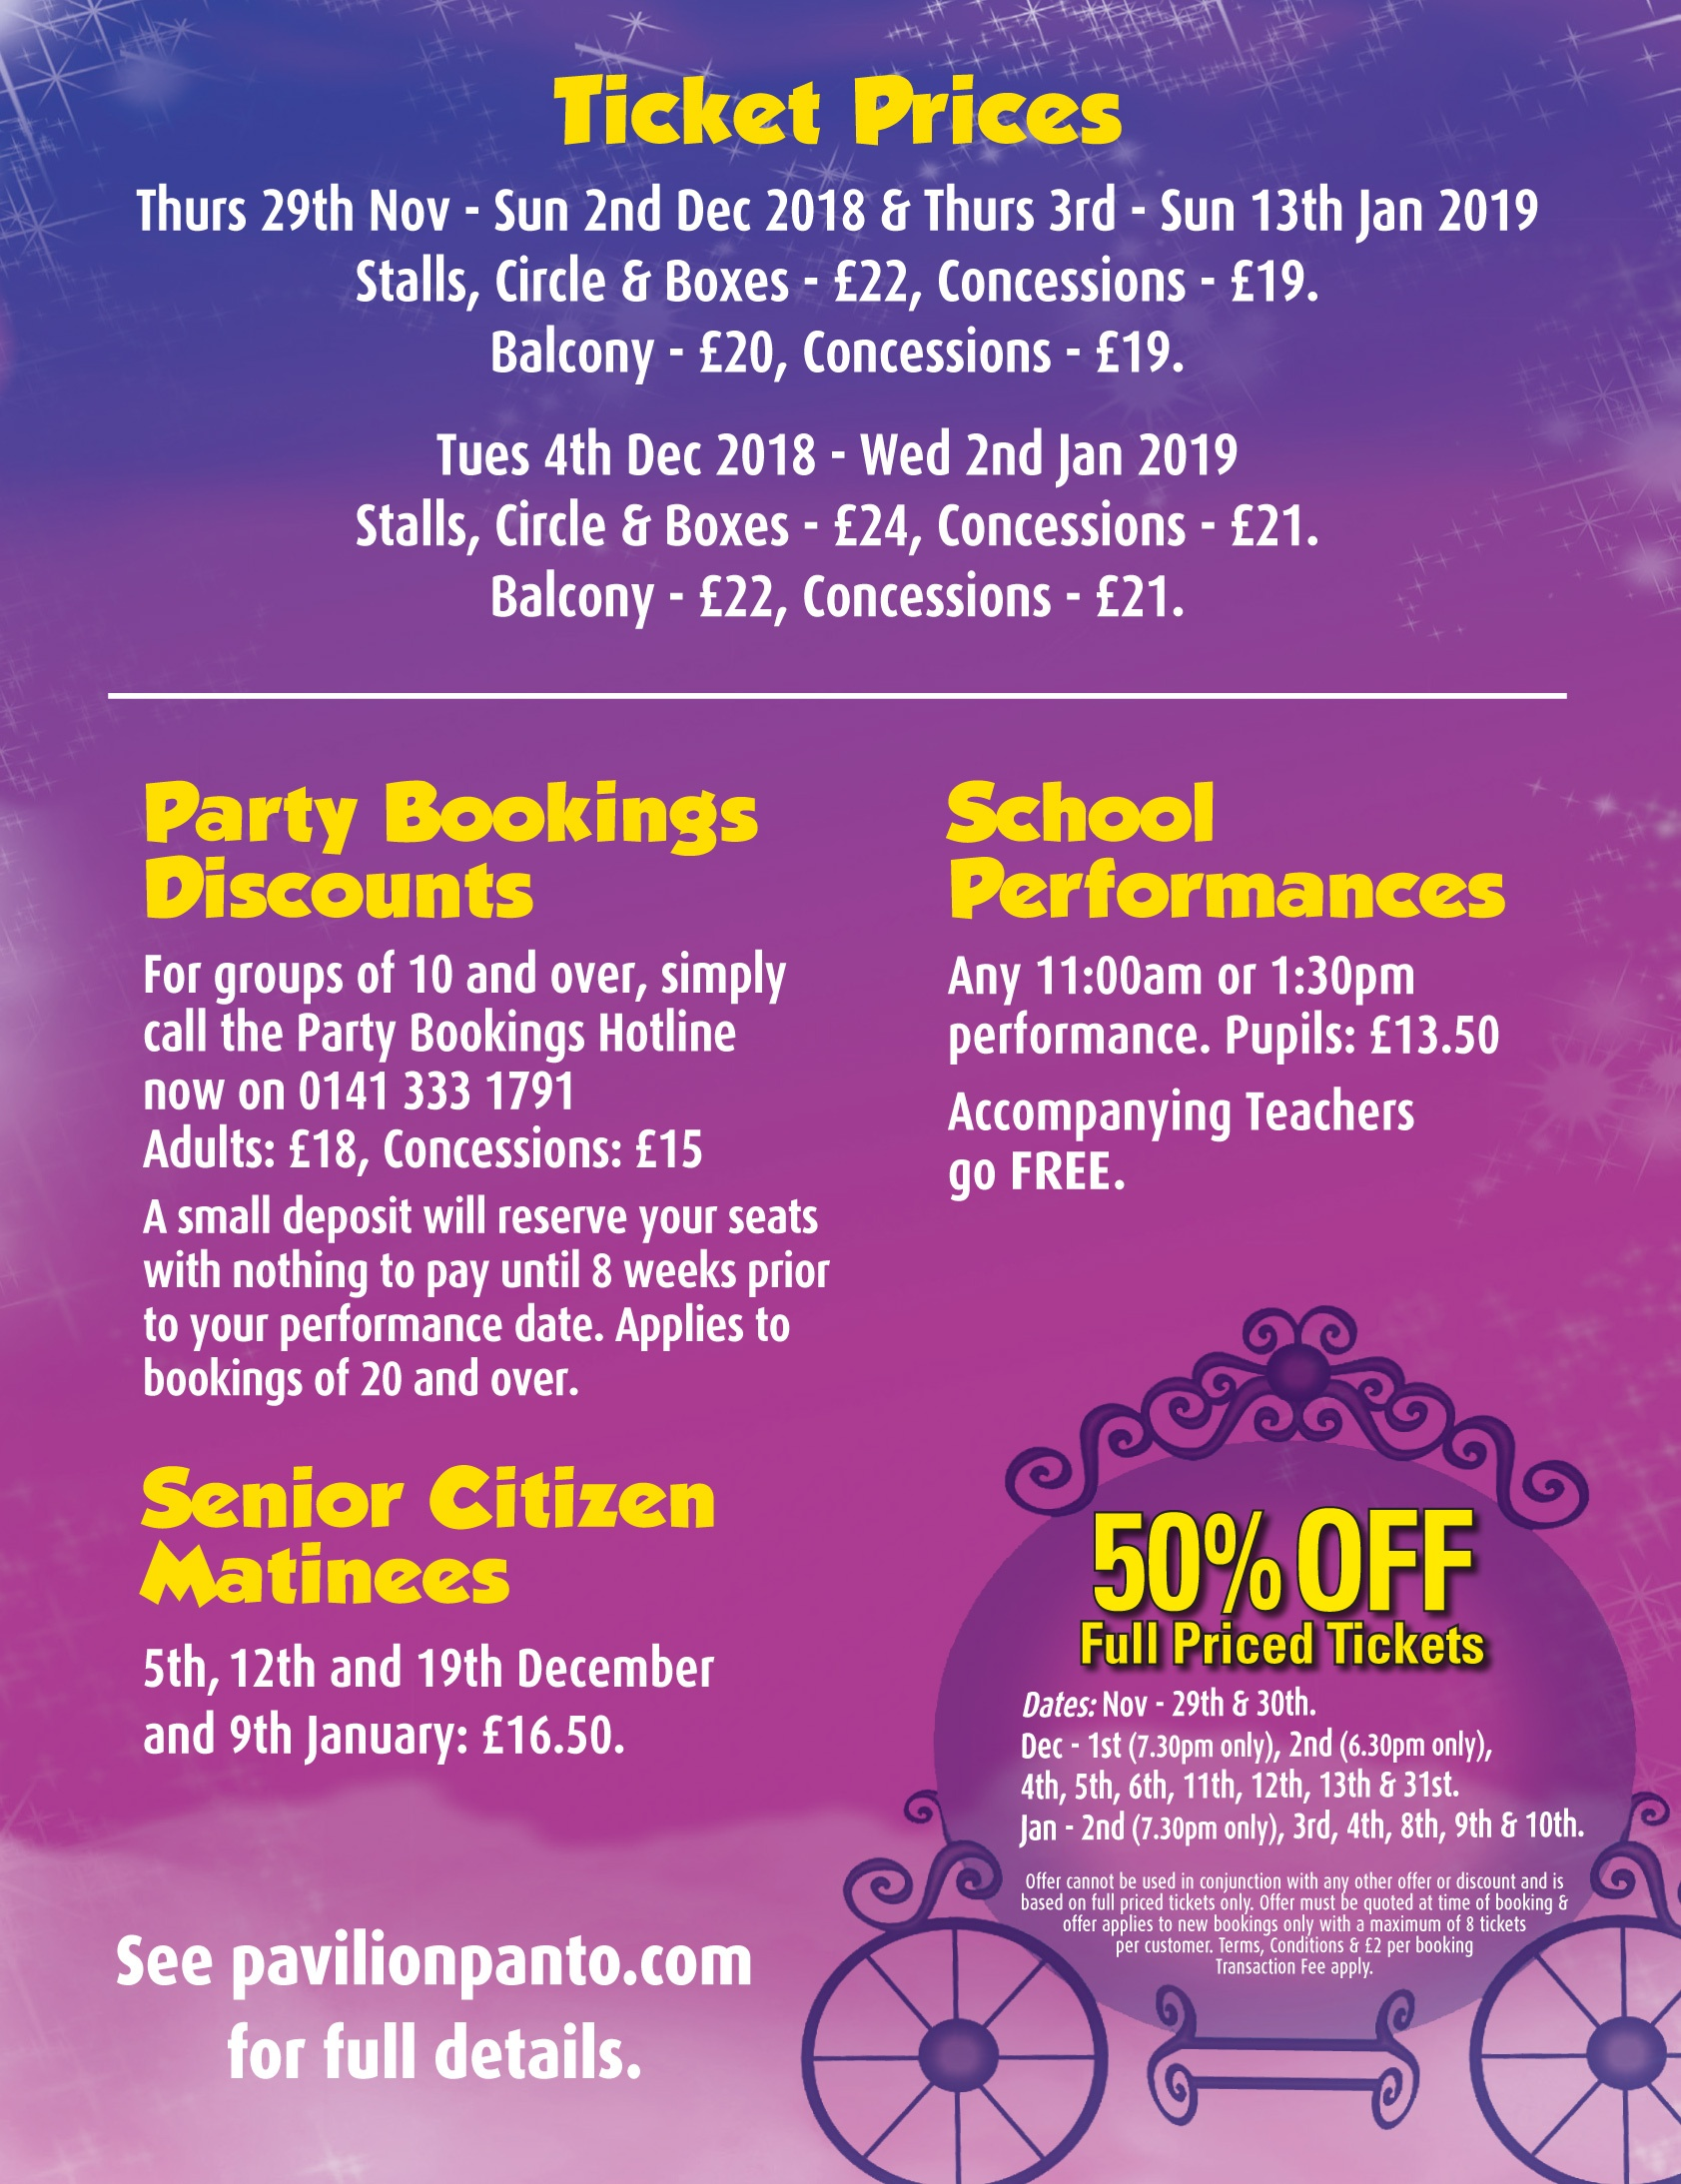 Glasgow Panto Ticket Prices